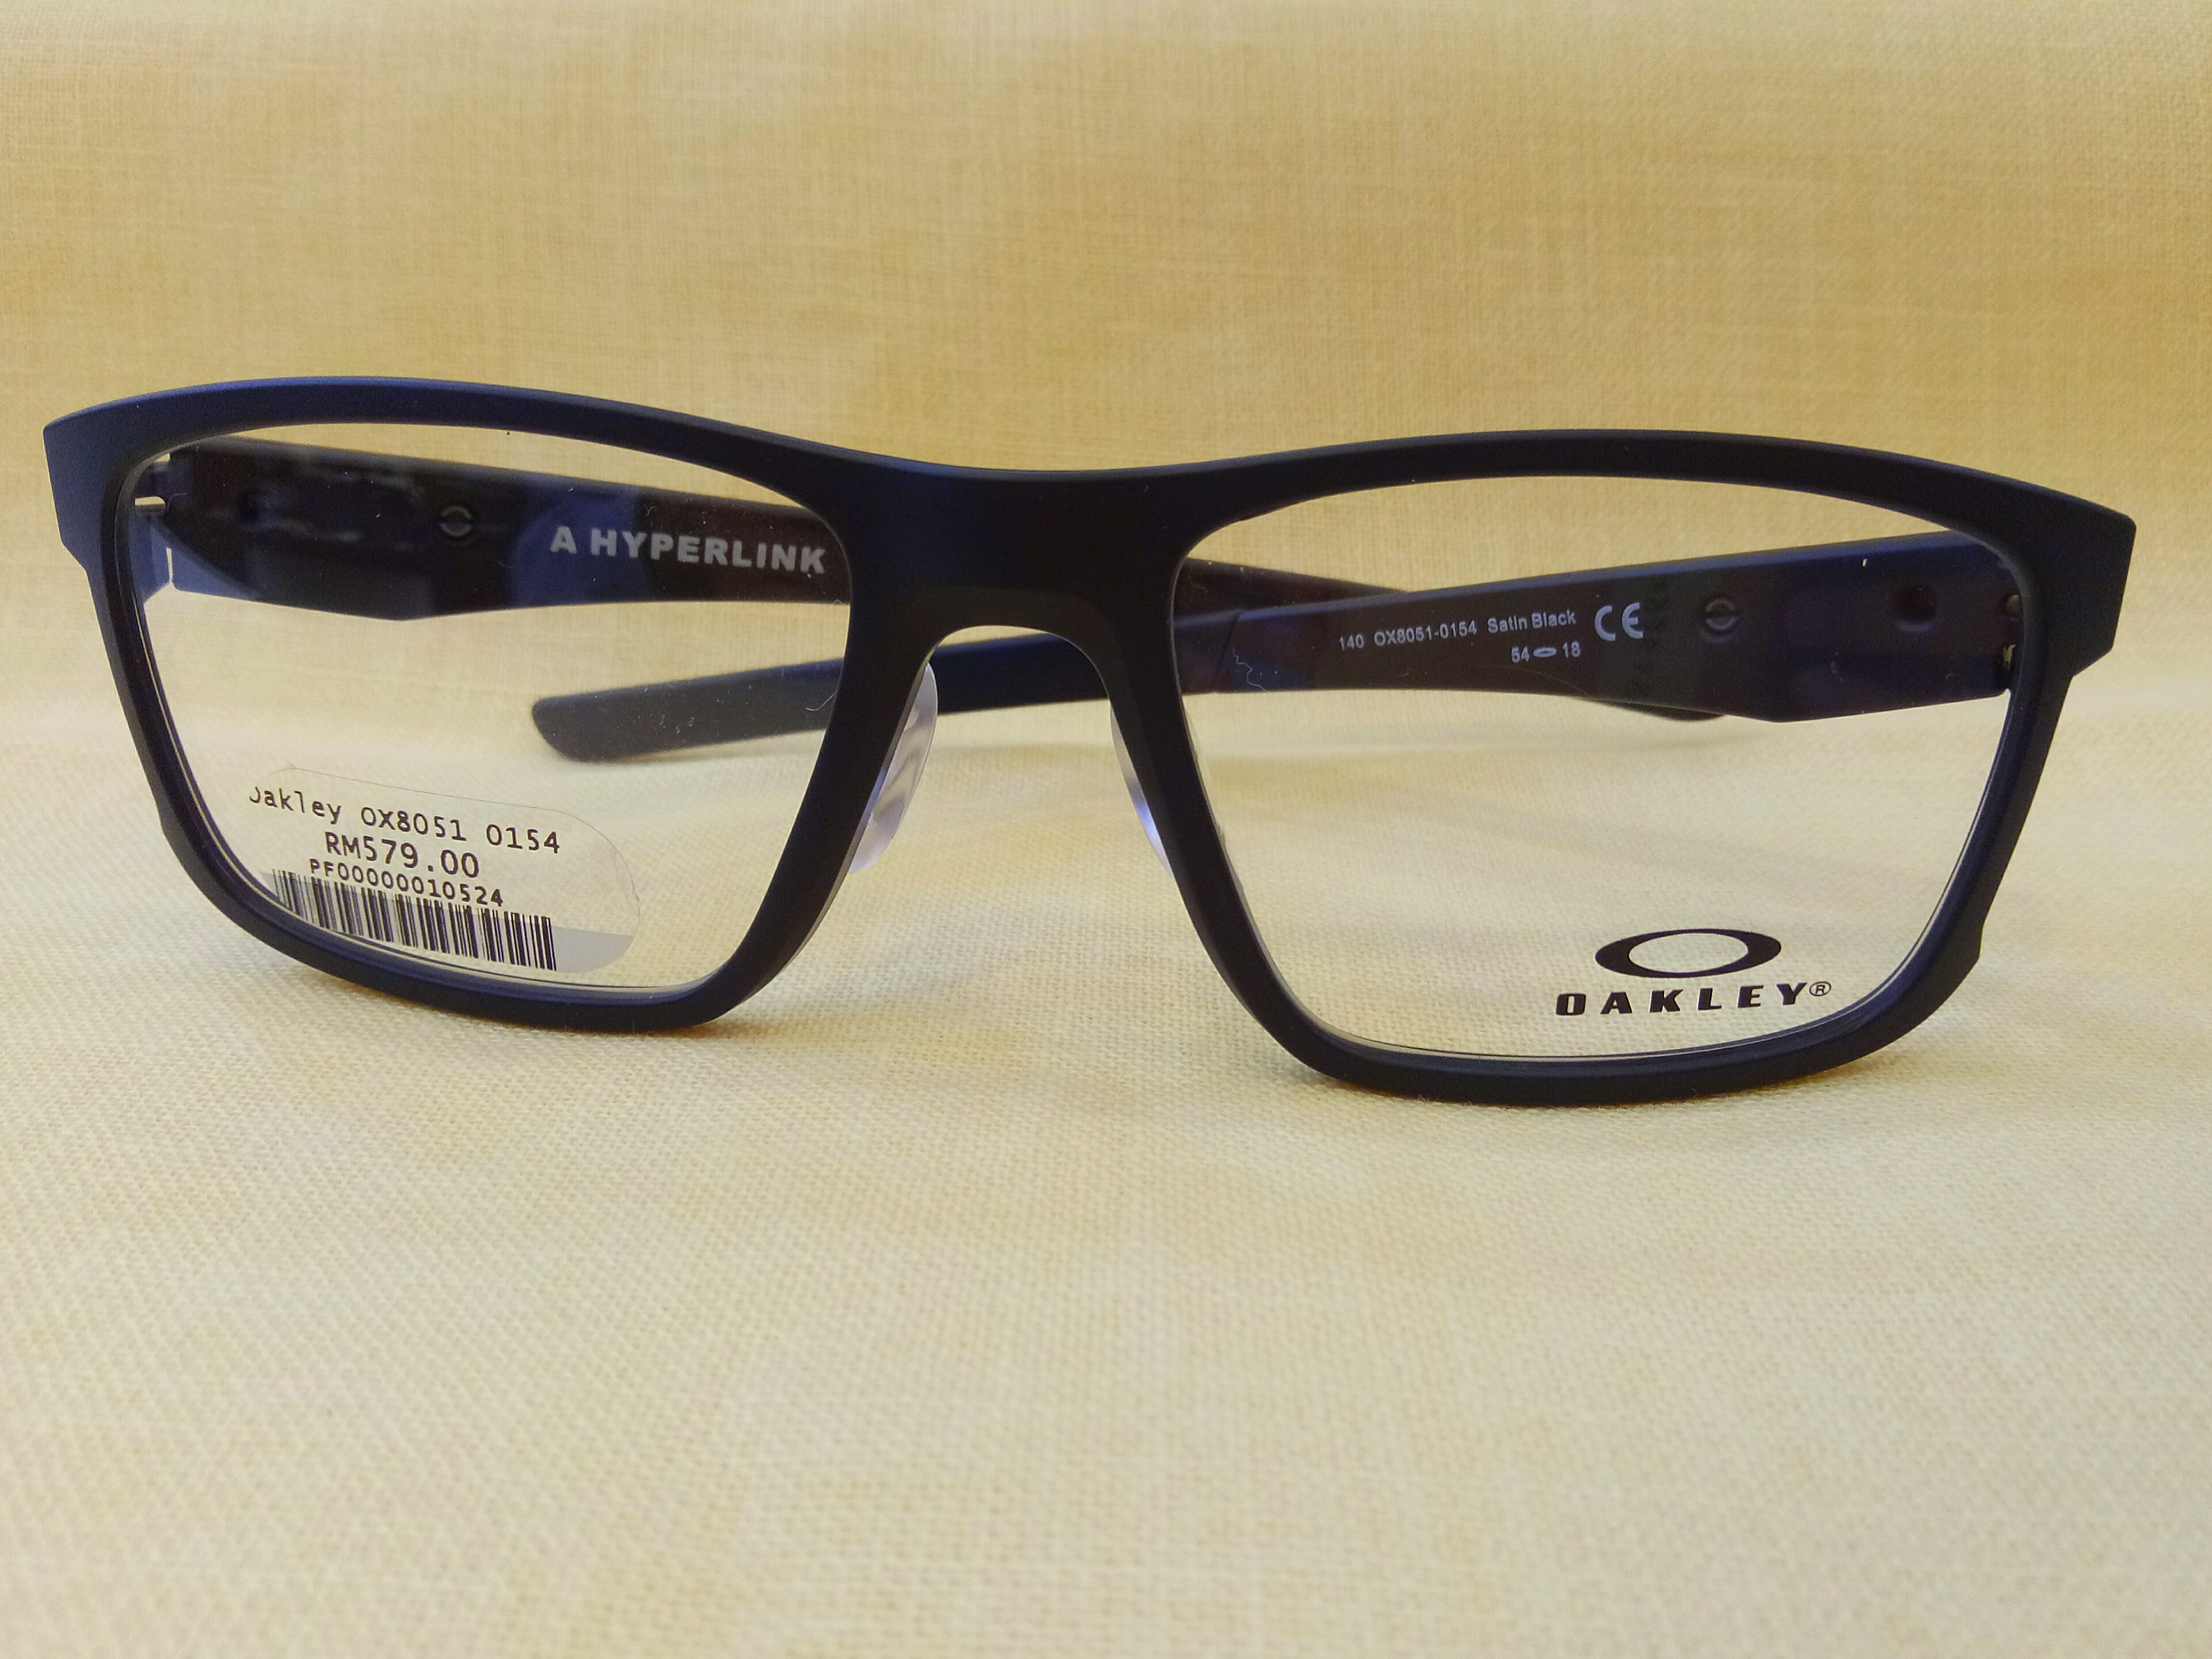 b1f6b7bdaf855 Oakley A Hyperlink OX8051-0154